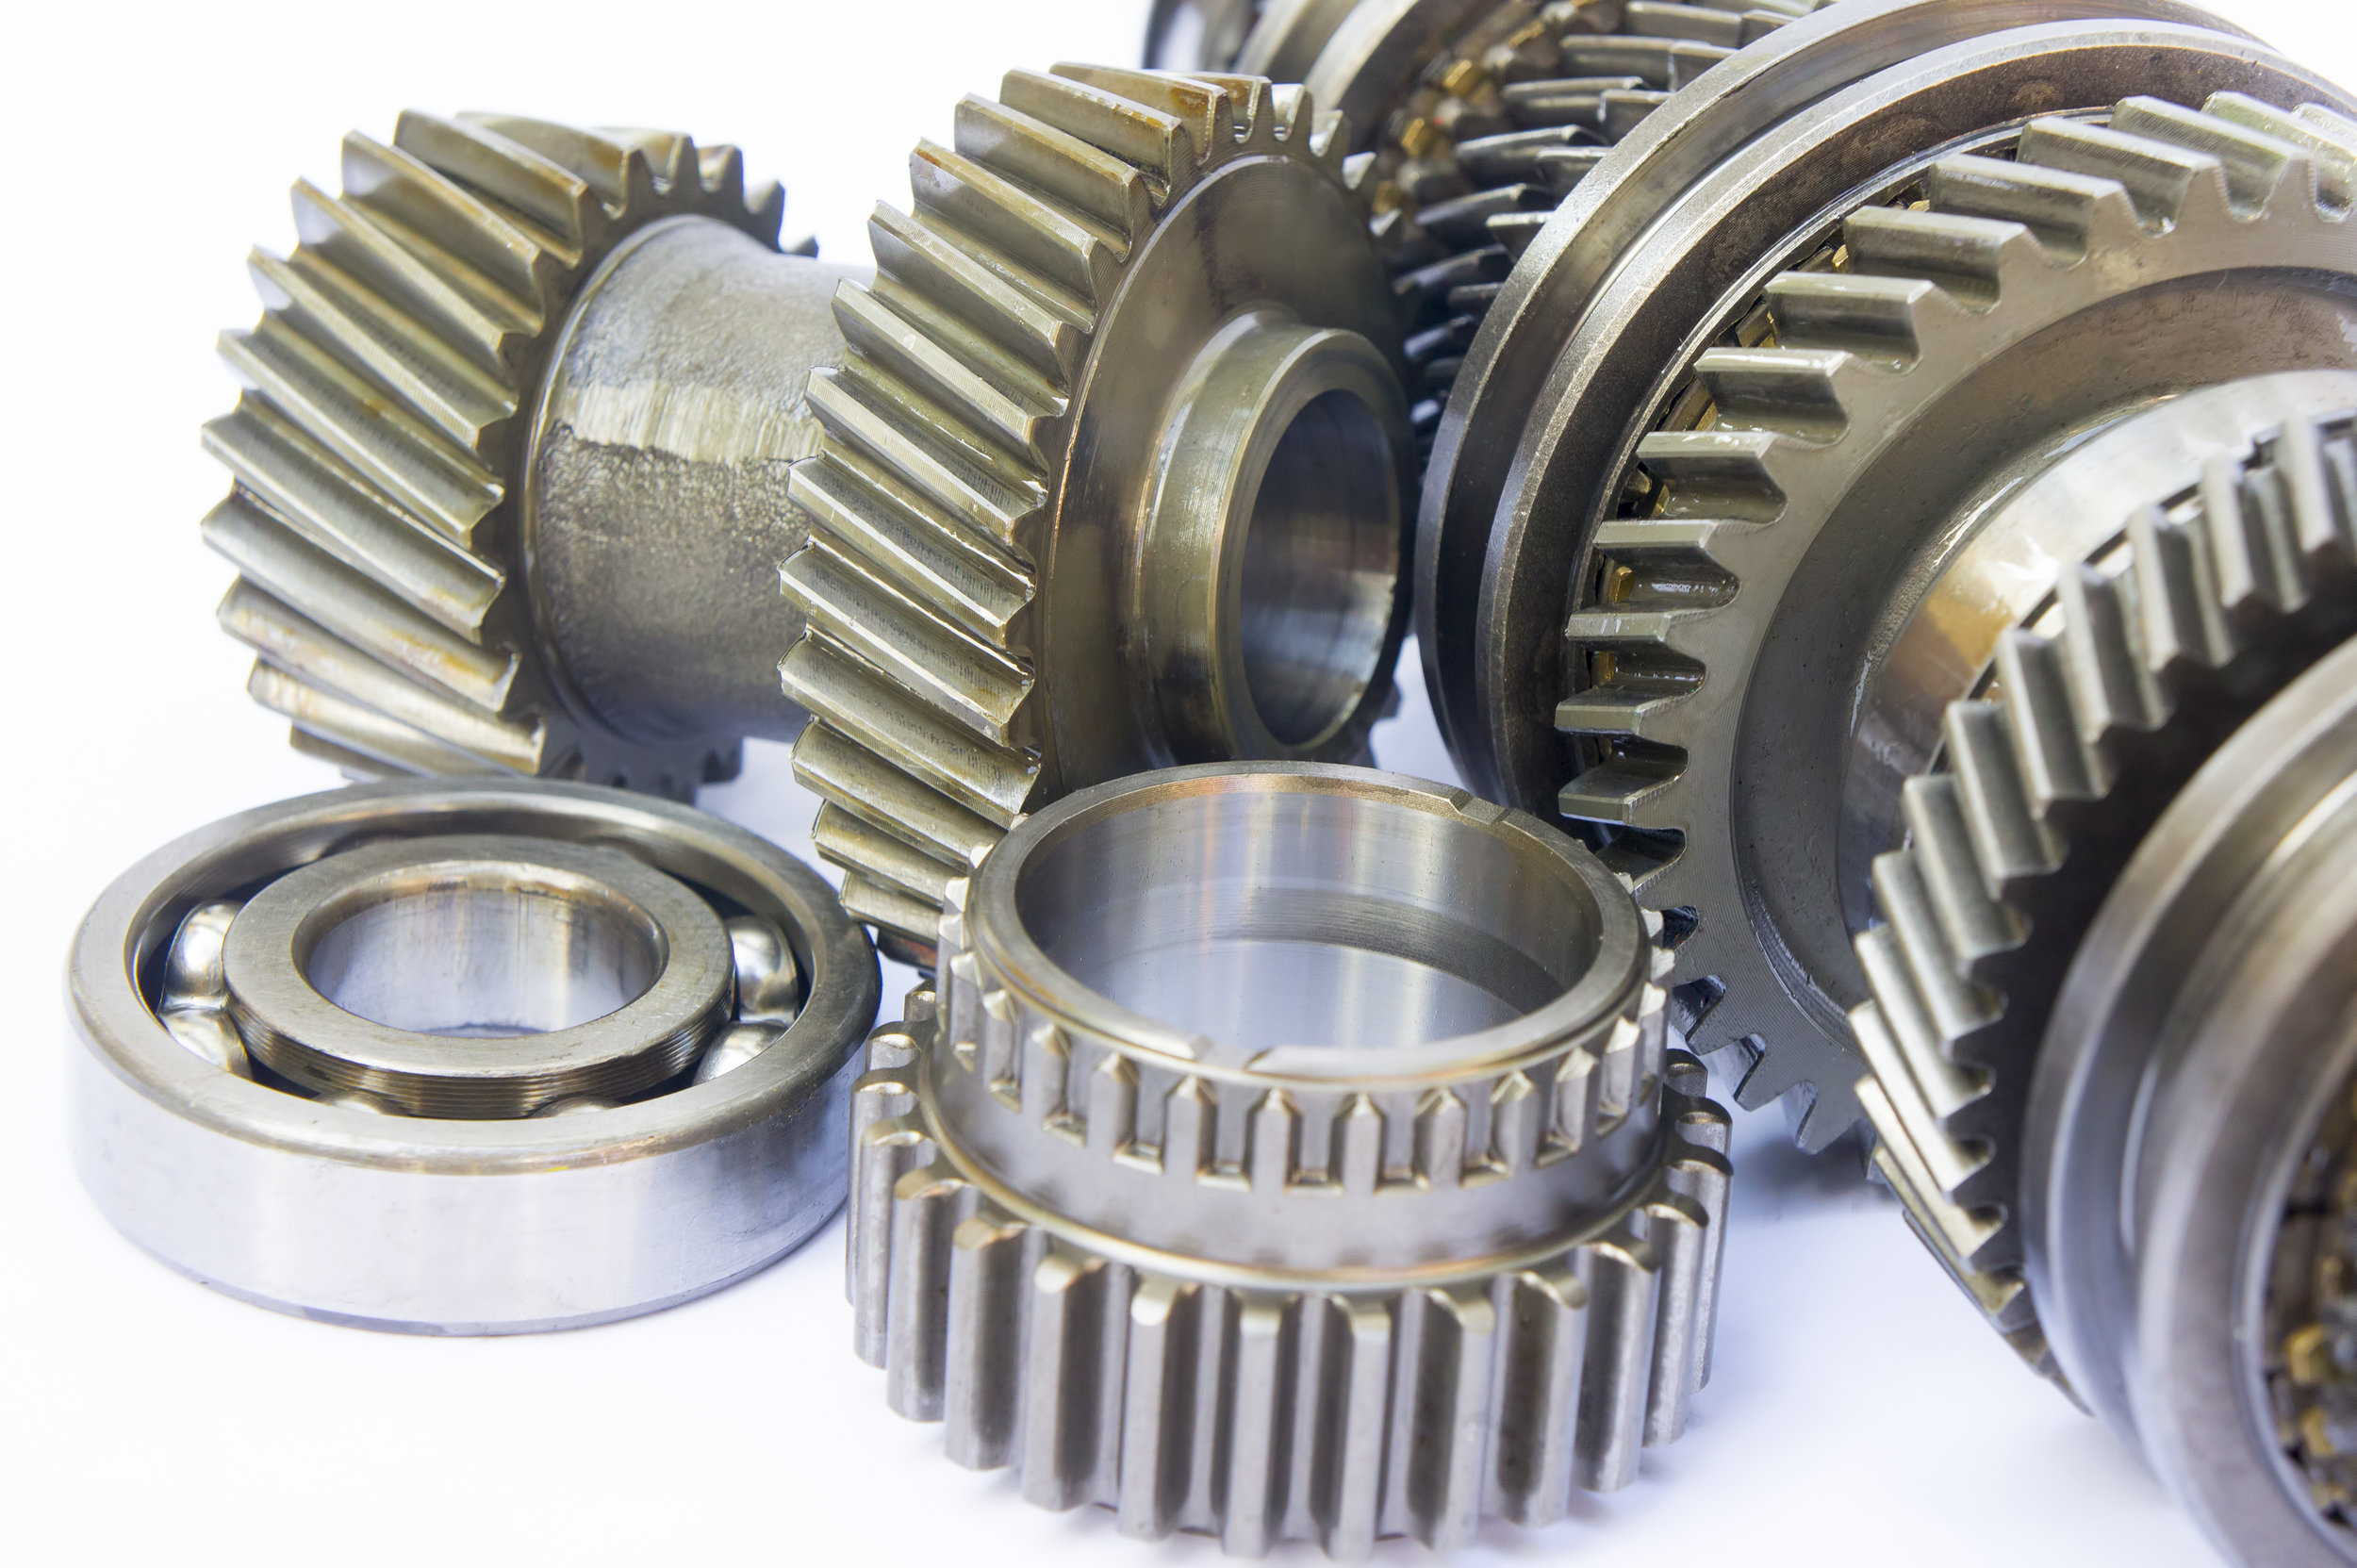 gear Production - Spur, Helical, Bevel, ShaftsHobbingGear GrindingSkivingShaping